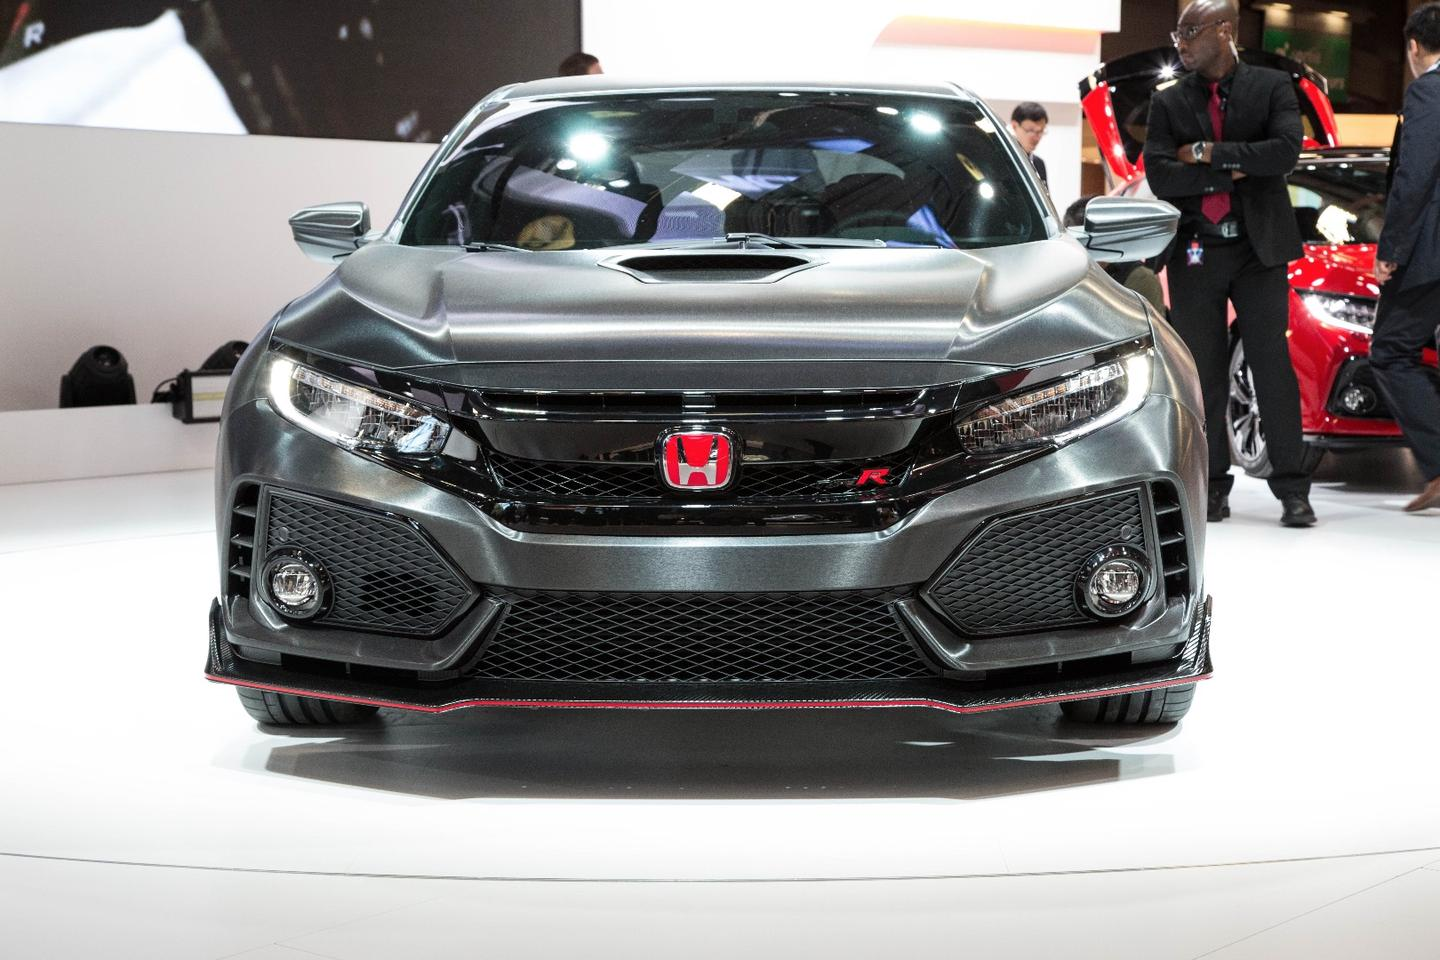 The Honda Civic Type-R Prototype is seriously menacing